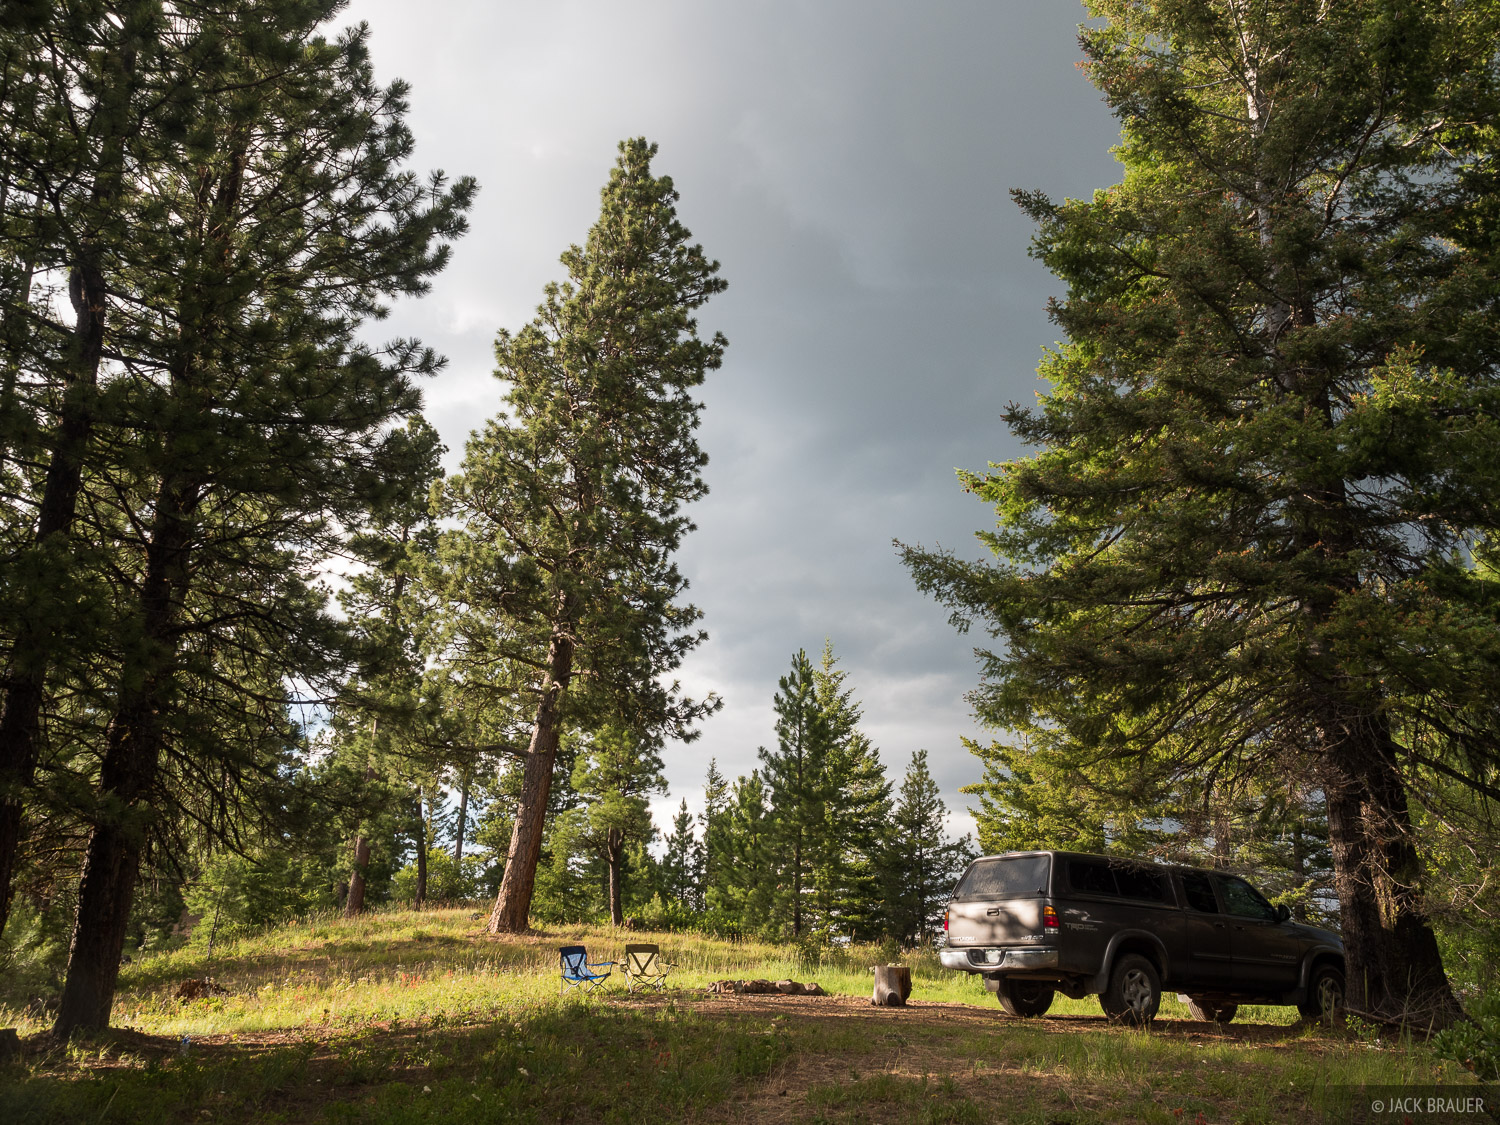 While waiting out poor weather, we car camped a few nights up on Tronsen Ridge near Leavenworth in eastern Washington.